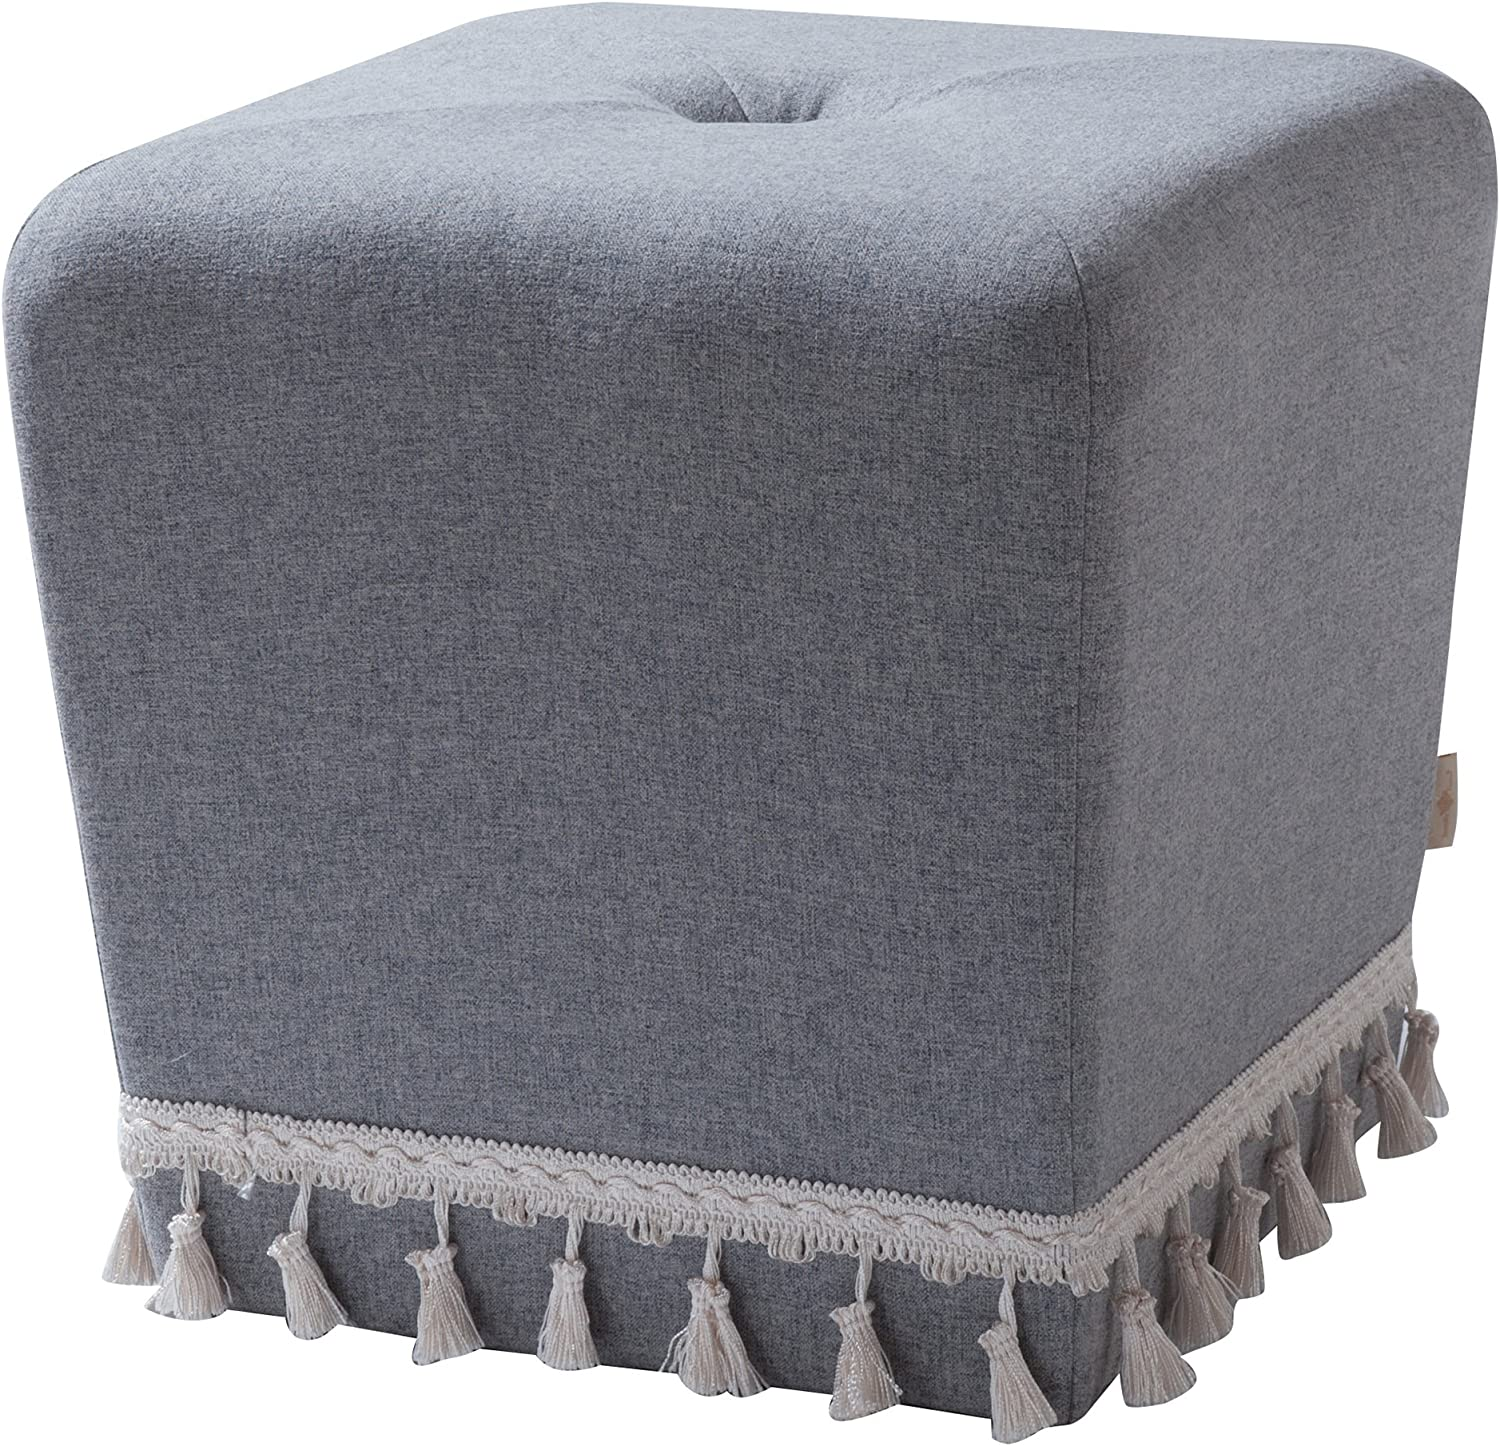 Jennifer Taylor Home Colleen Fringe Square Accent Ottoman, Light Grey